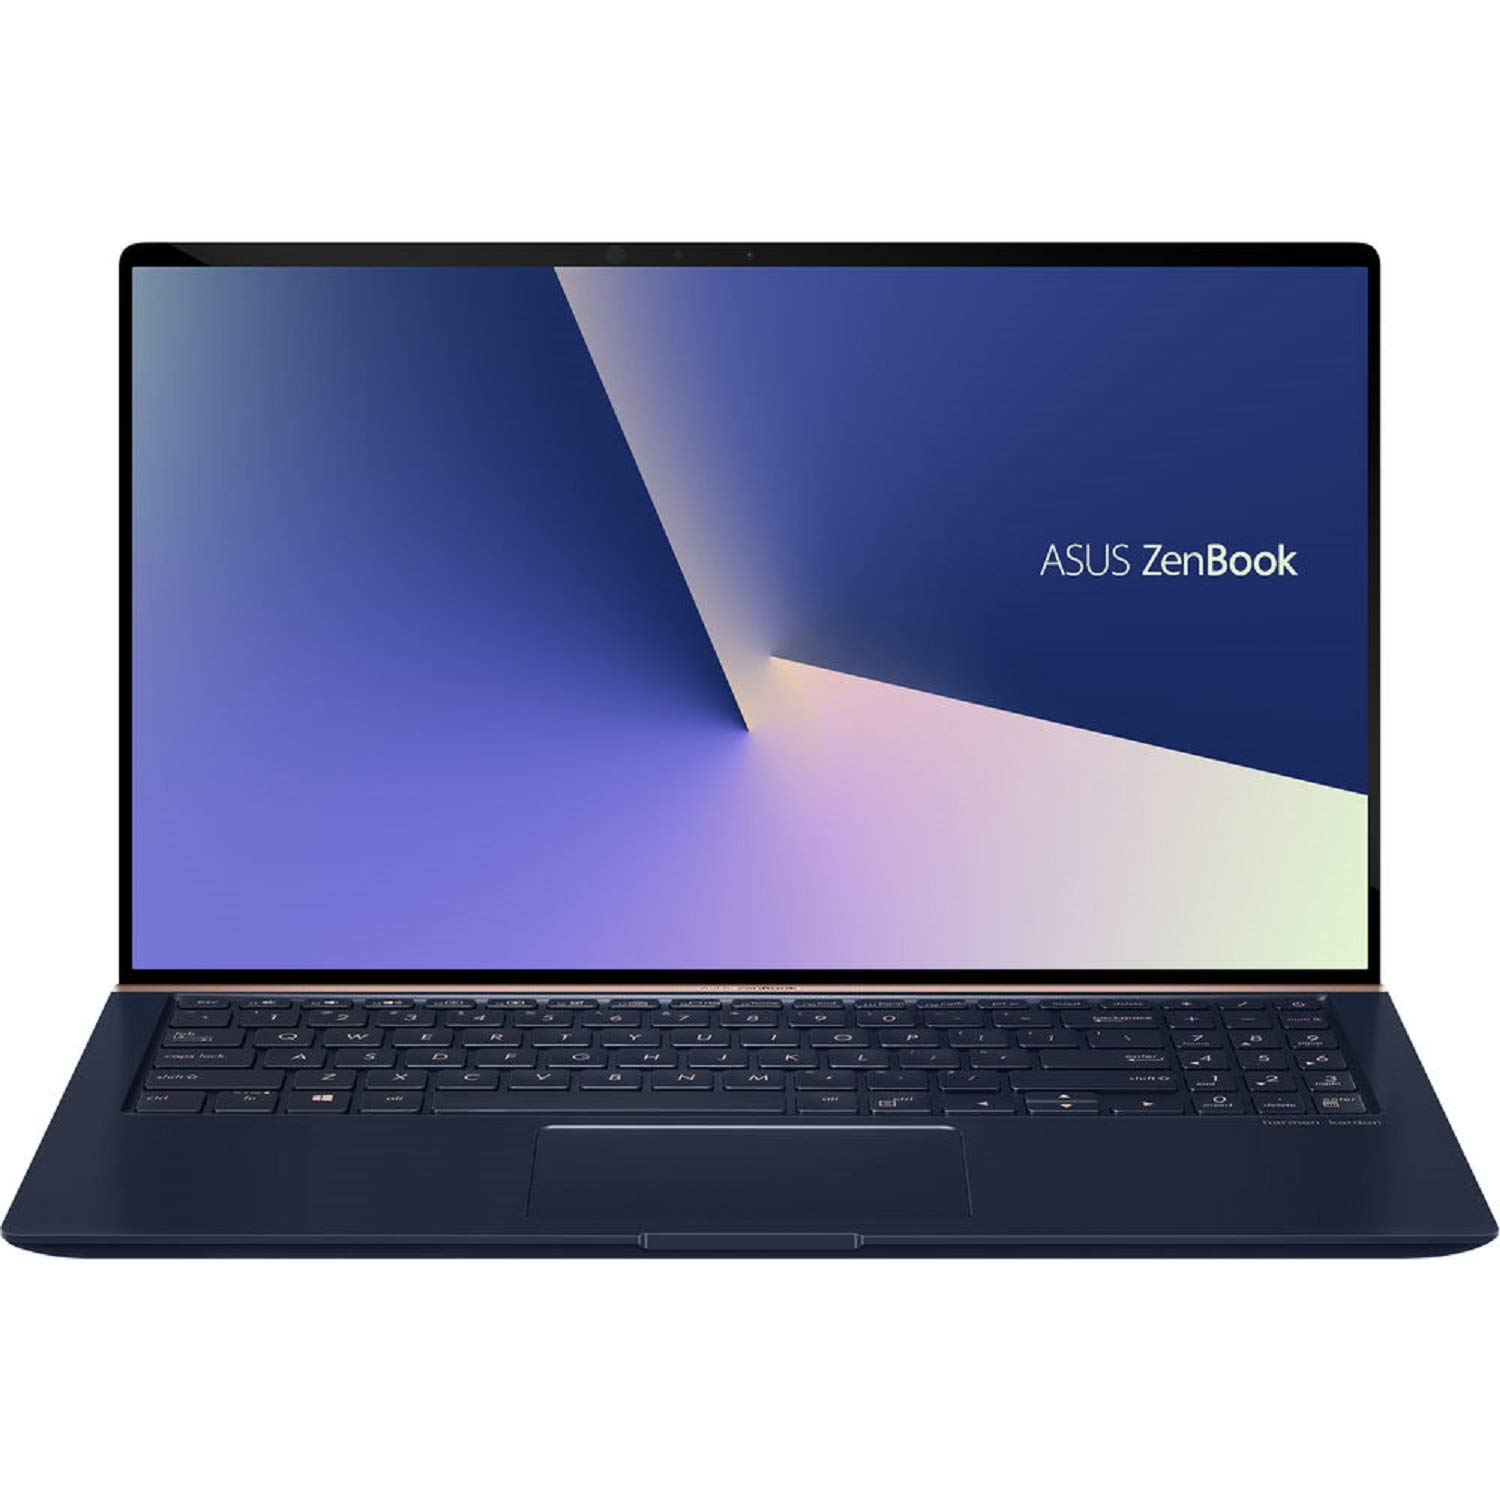 【大放出セール】 ASUS ZenBook Laptop Thin 15 UX533FD-DH74 Premium Win Light and Thin Home and Business Laptop (Intel 8th Gen i7-8565U, 16GB RAM, 1TB PCIe SSD, 15.6